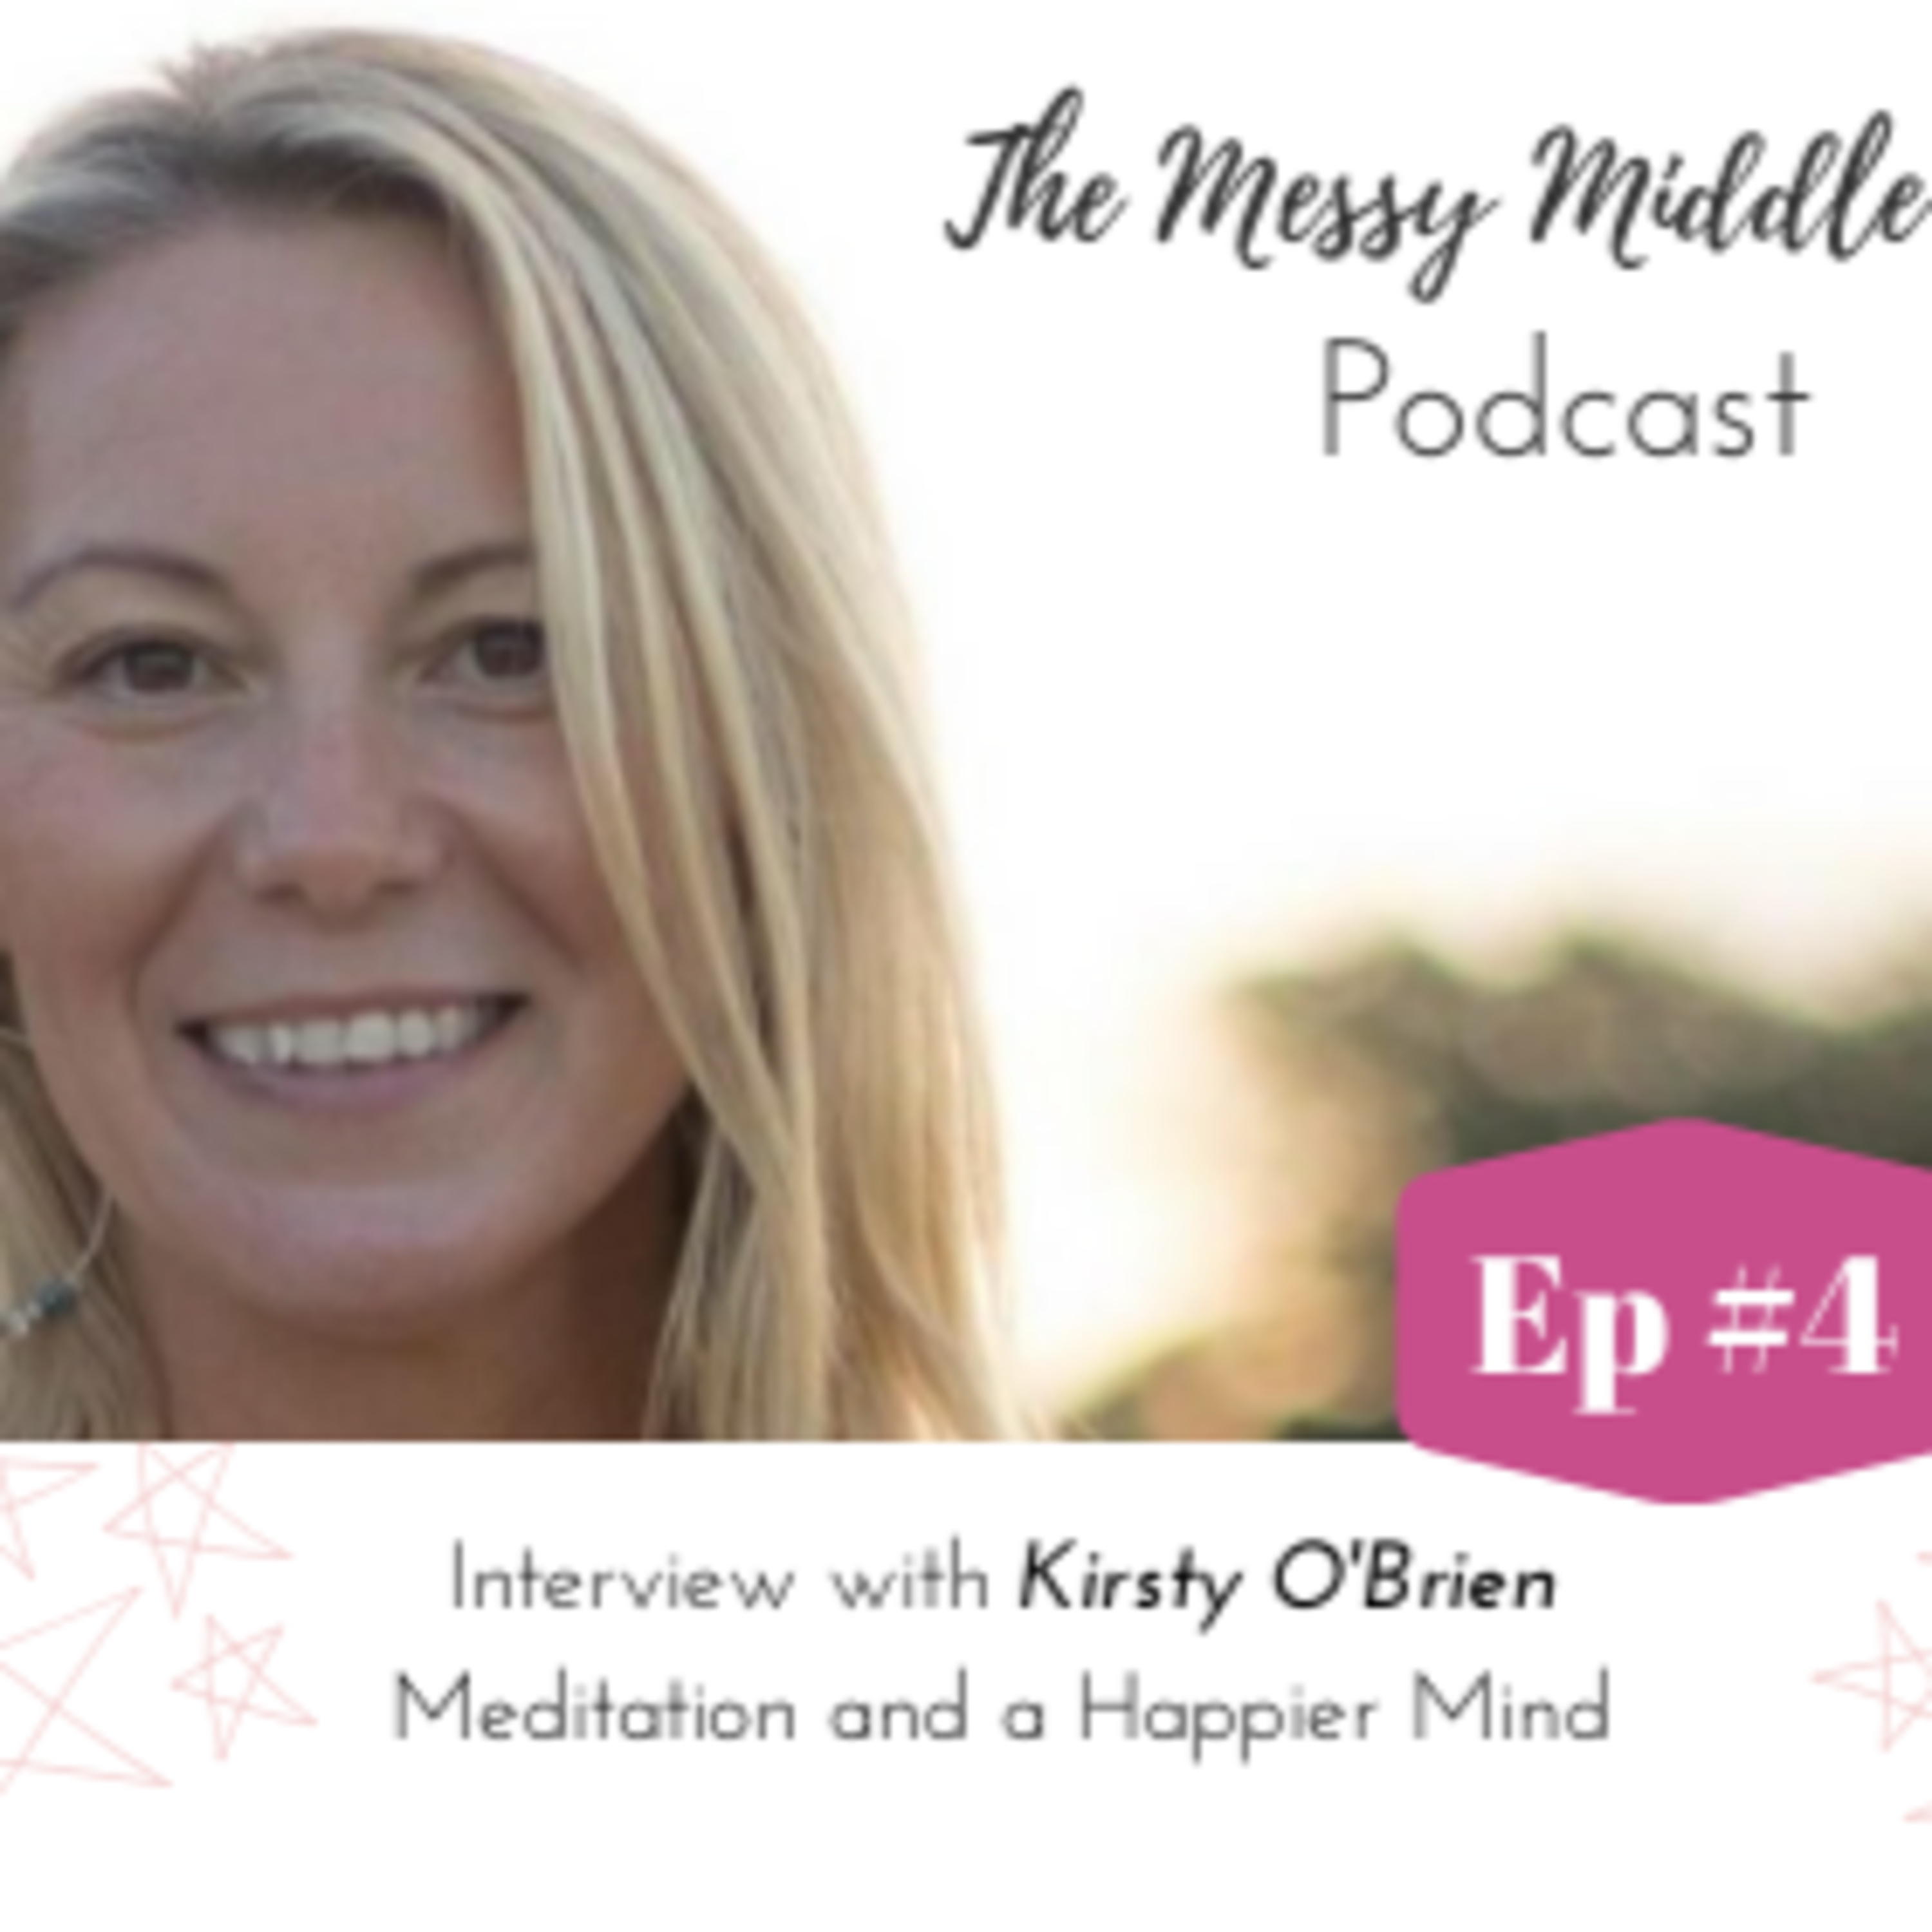 #4 Interview with Kirsty O'Brien - Meditation and a happier Mind